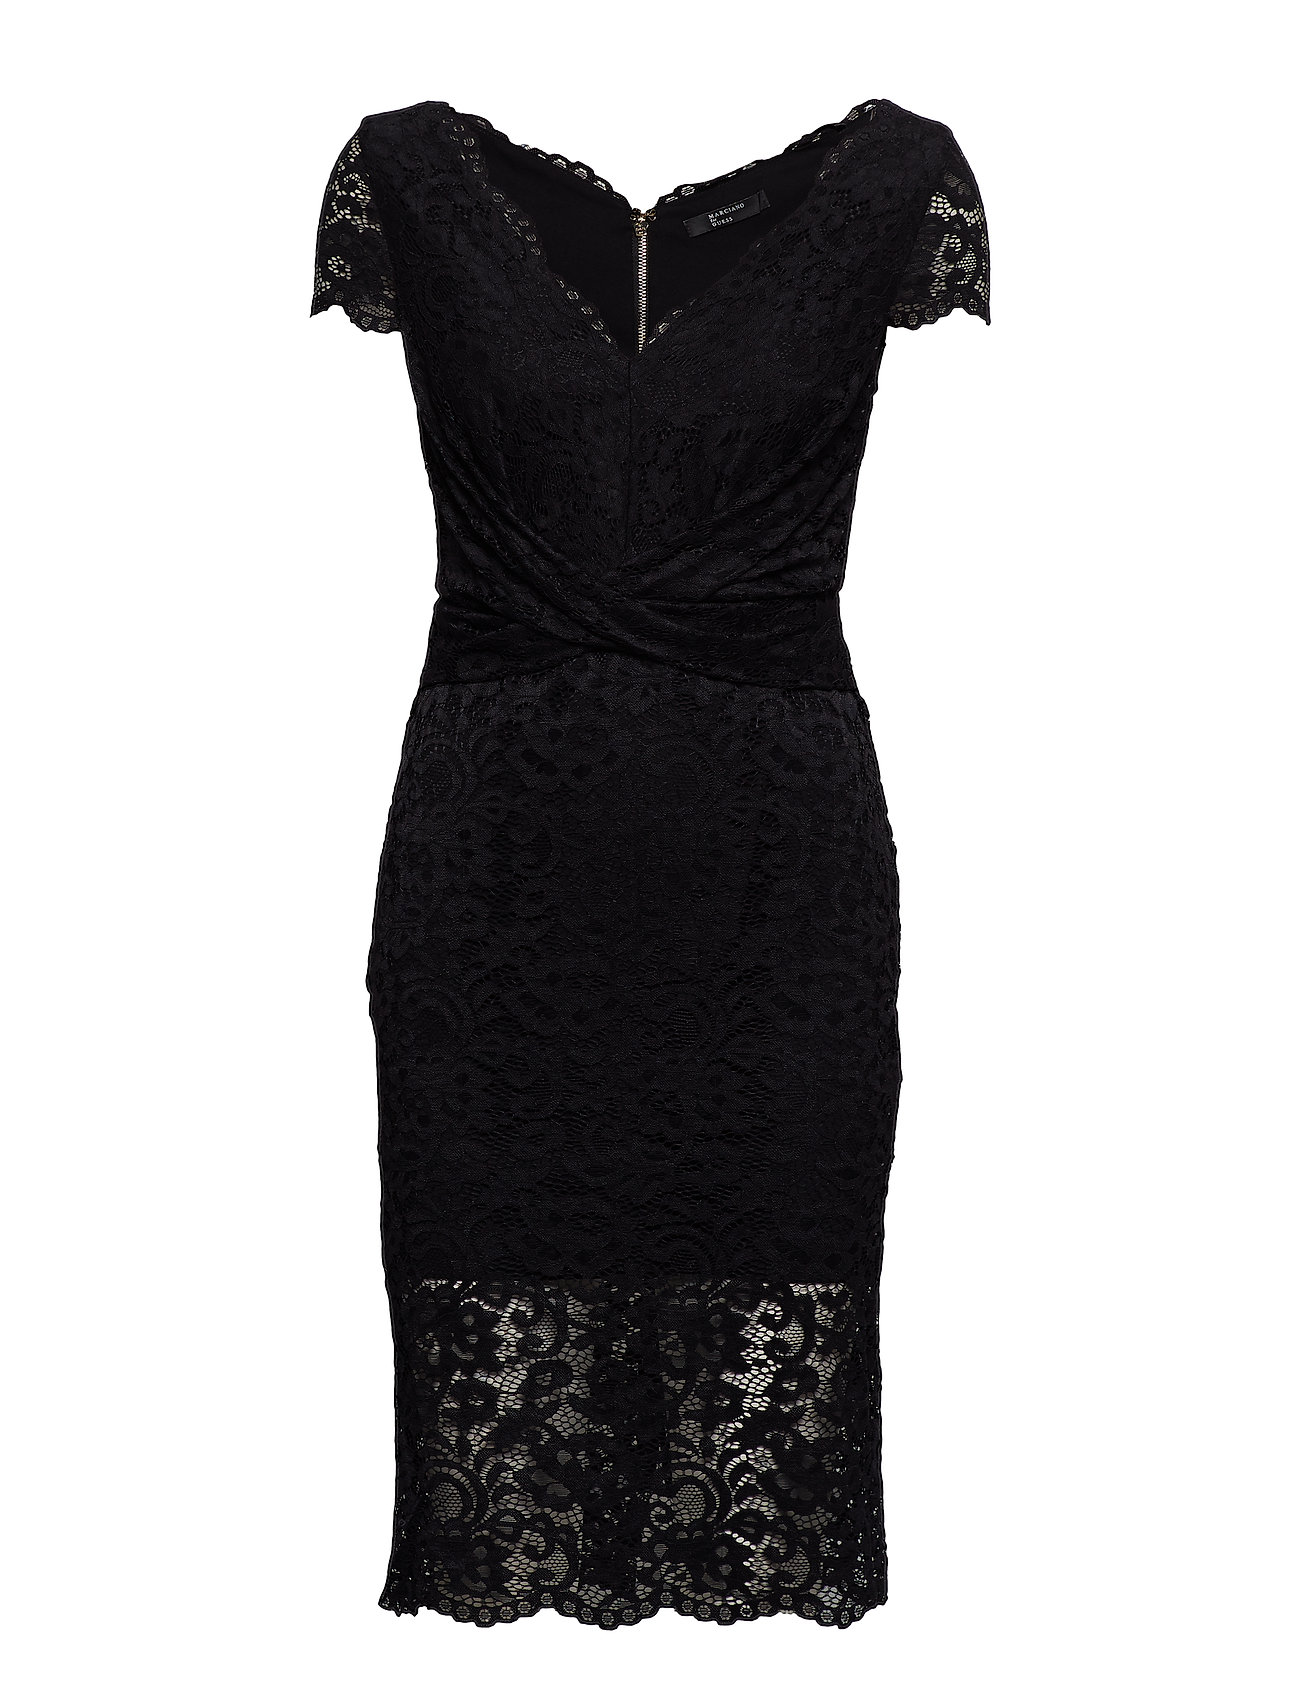 Marciano by GUESS CLAUDIA LACE DRESS - JET BLACK A996